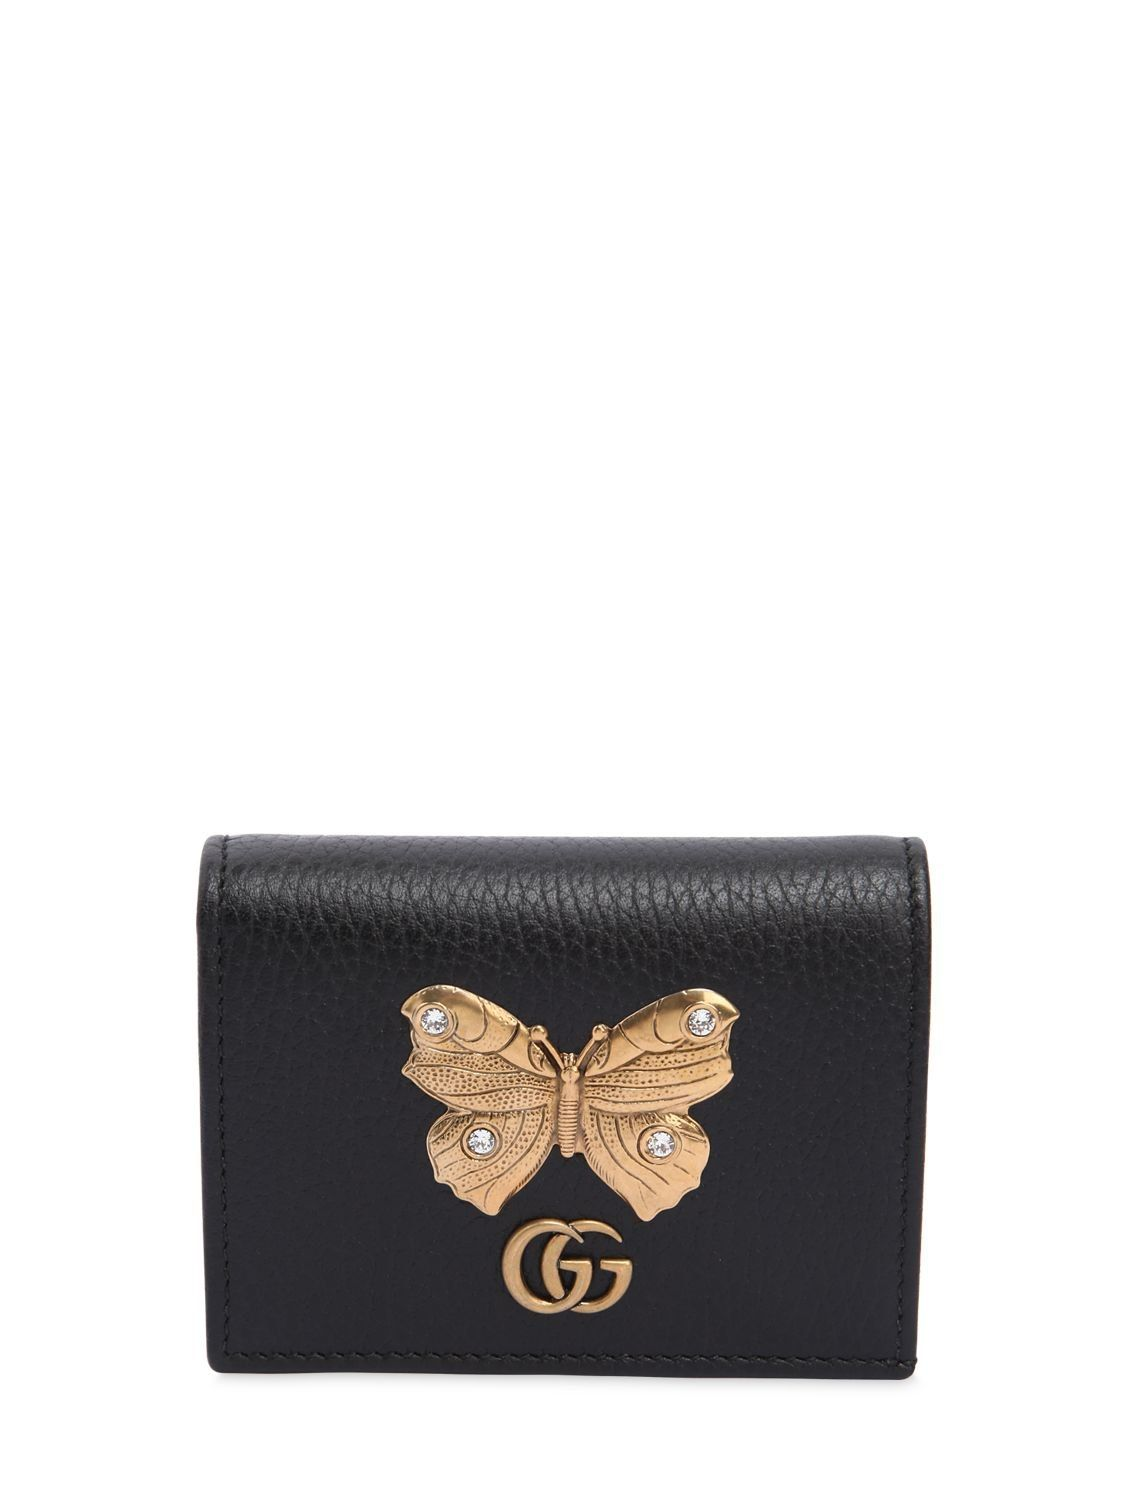 Gucci butterfly leather card case in black modesens